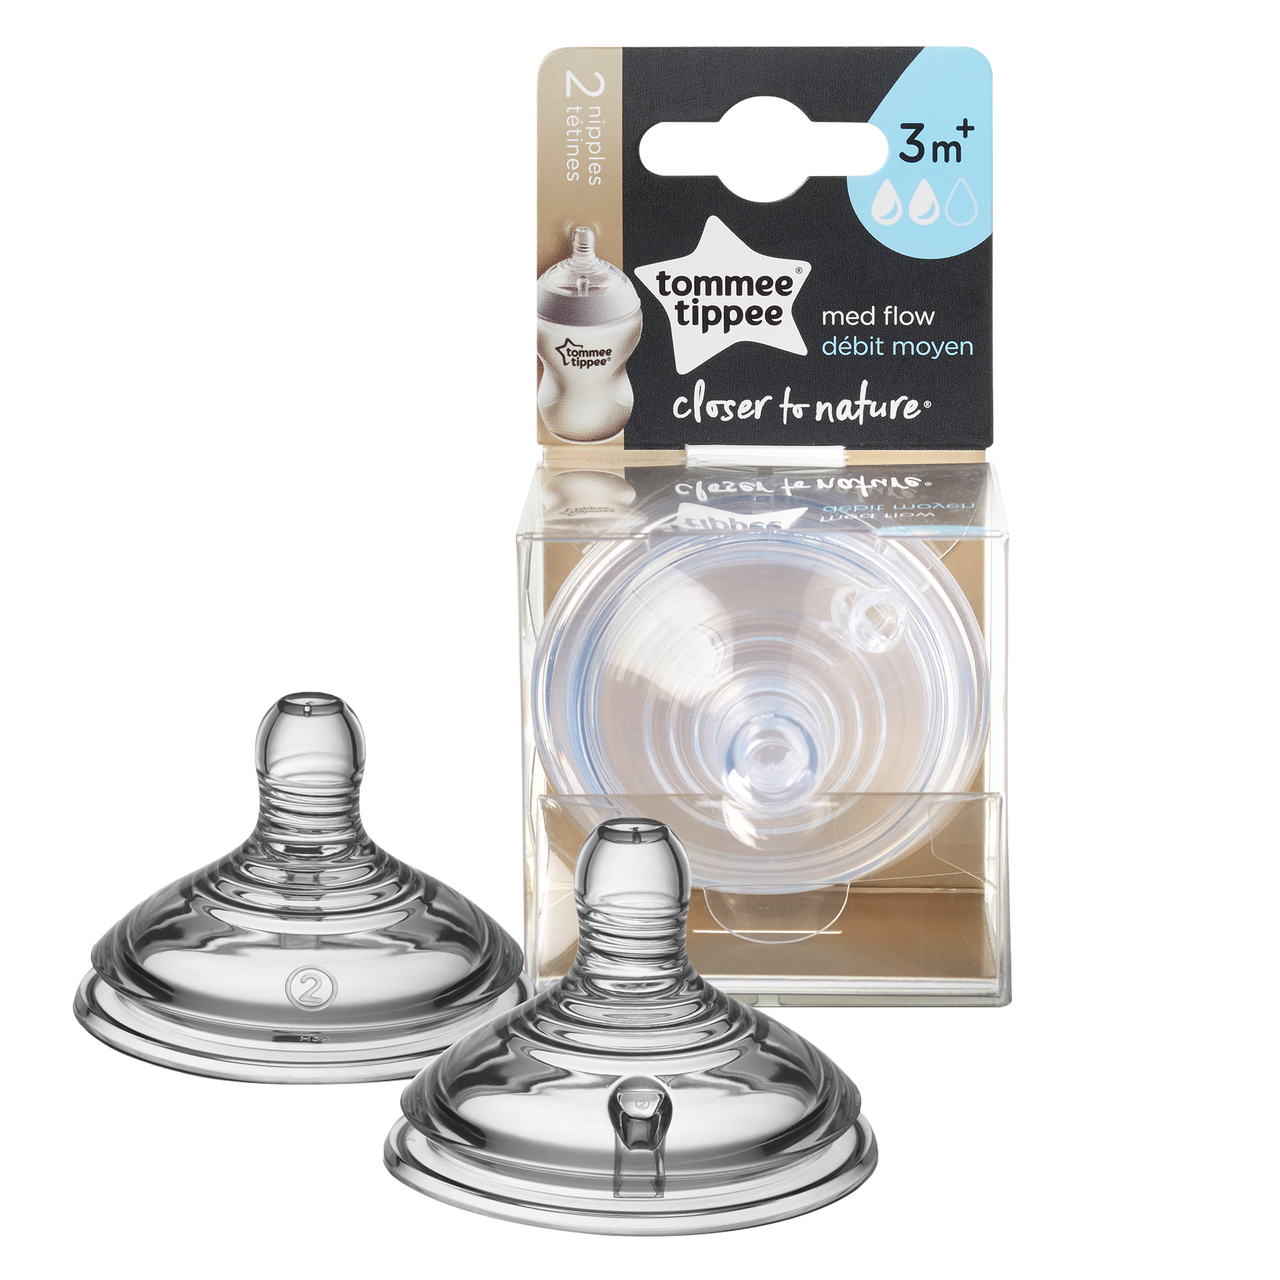 Tommee Tippee Closer to Nature Medium Flow Nipples, 3 month+, 2 pack